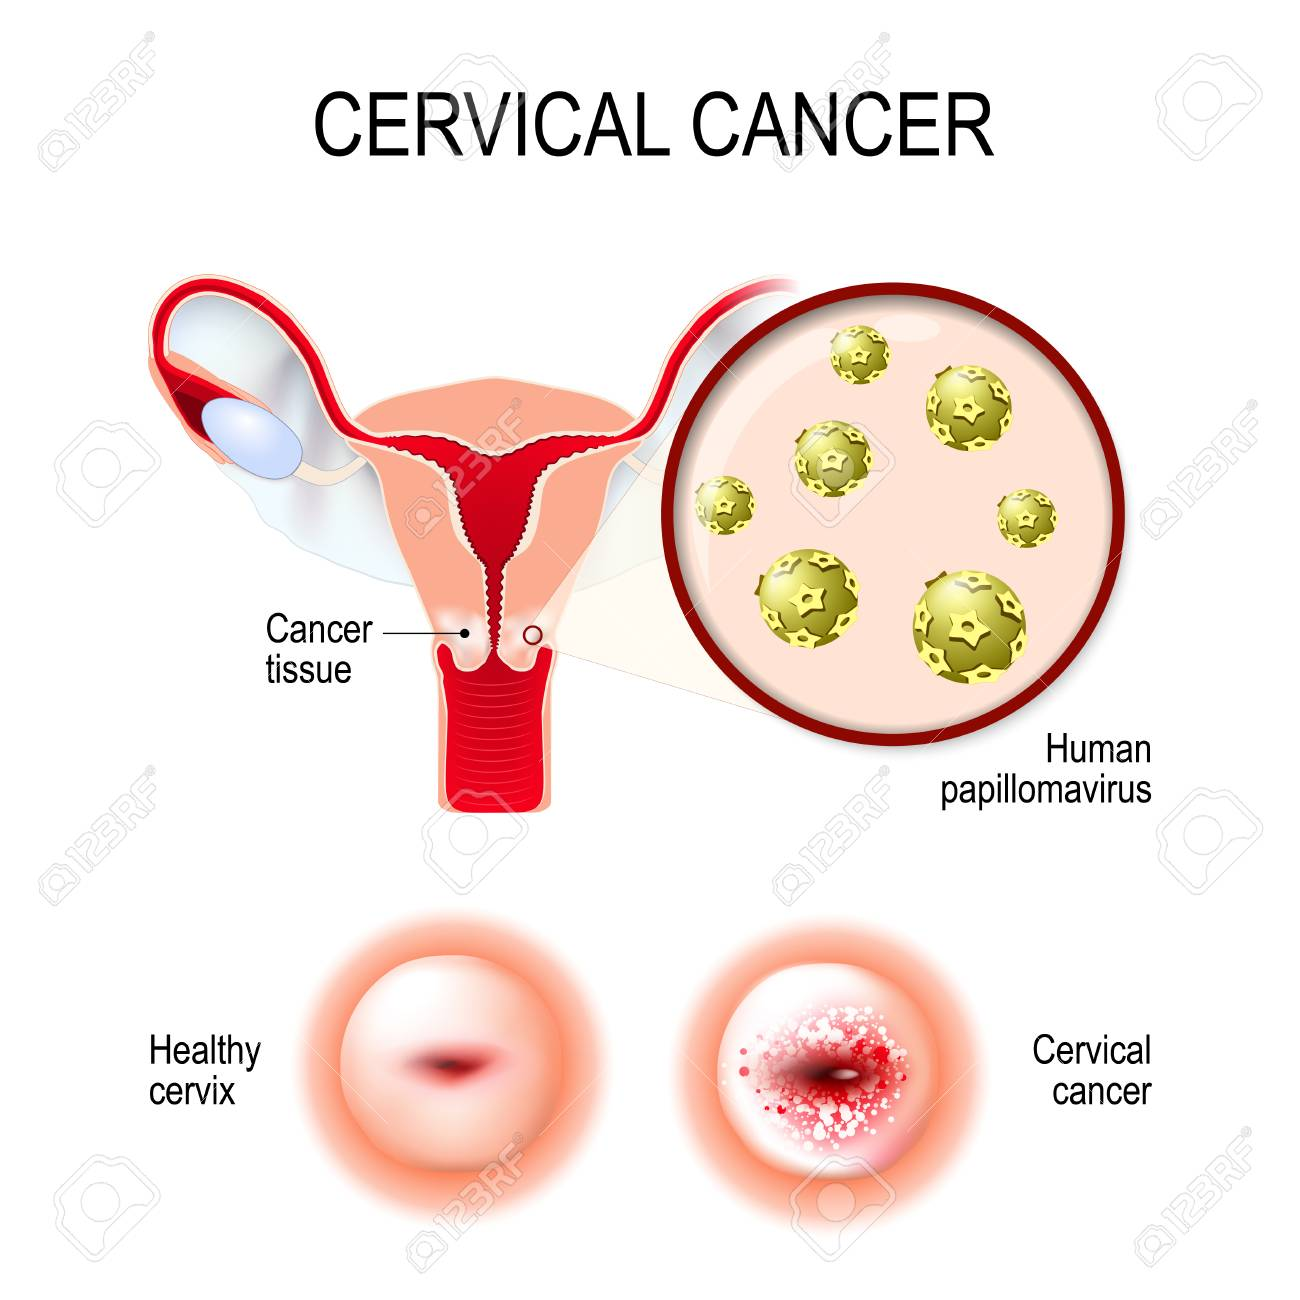 hpv cause cervical cancer)